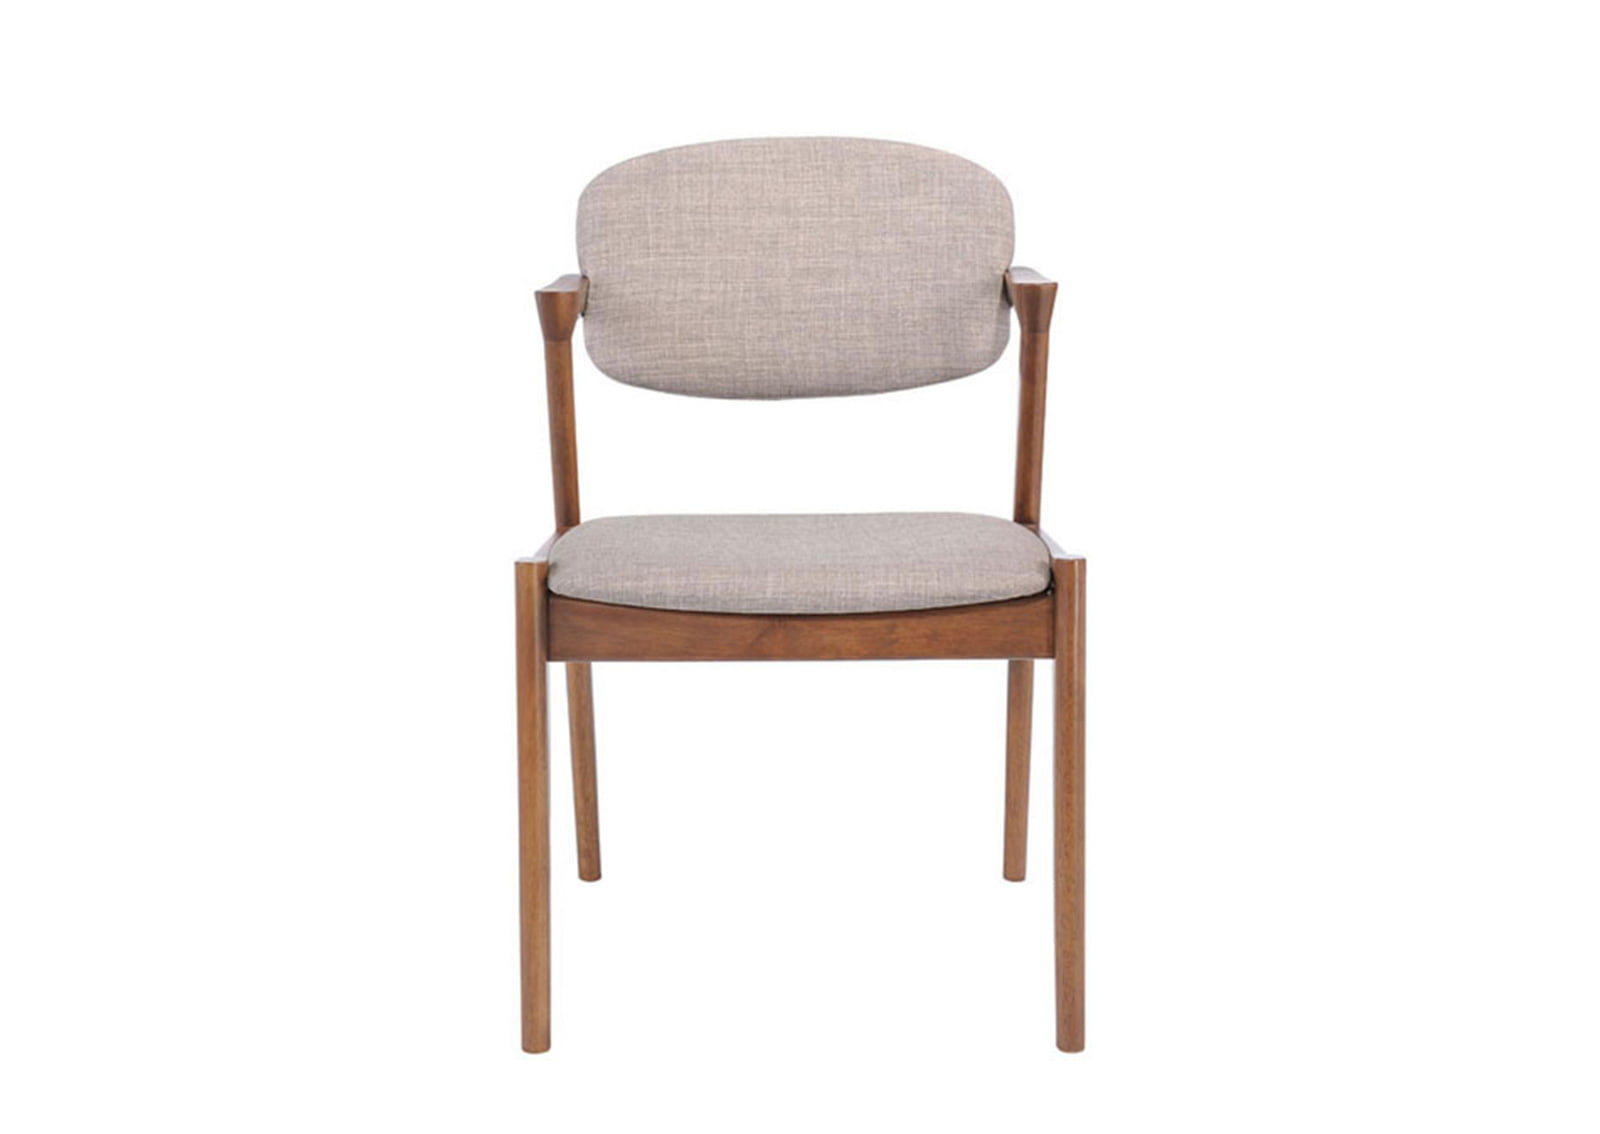 Brickell Dining Chair Dove Gray Furnishplus